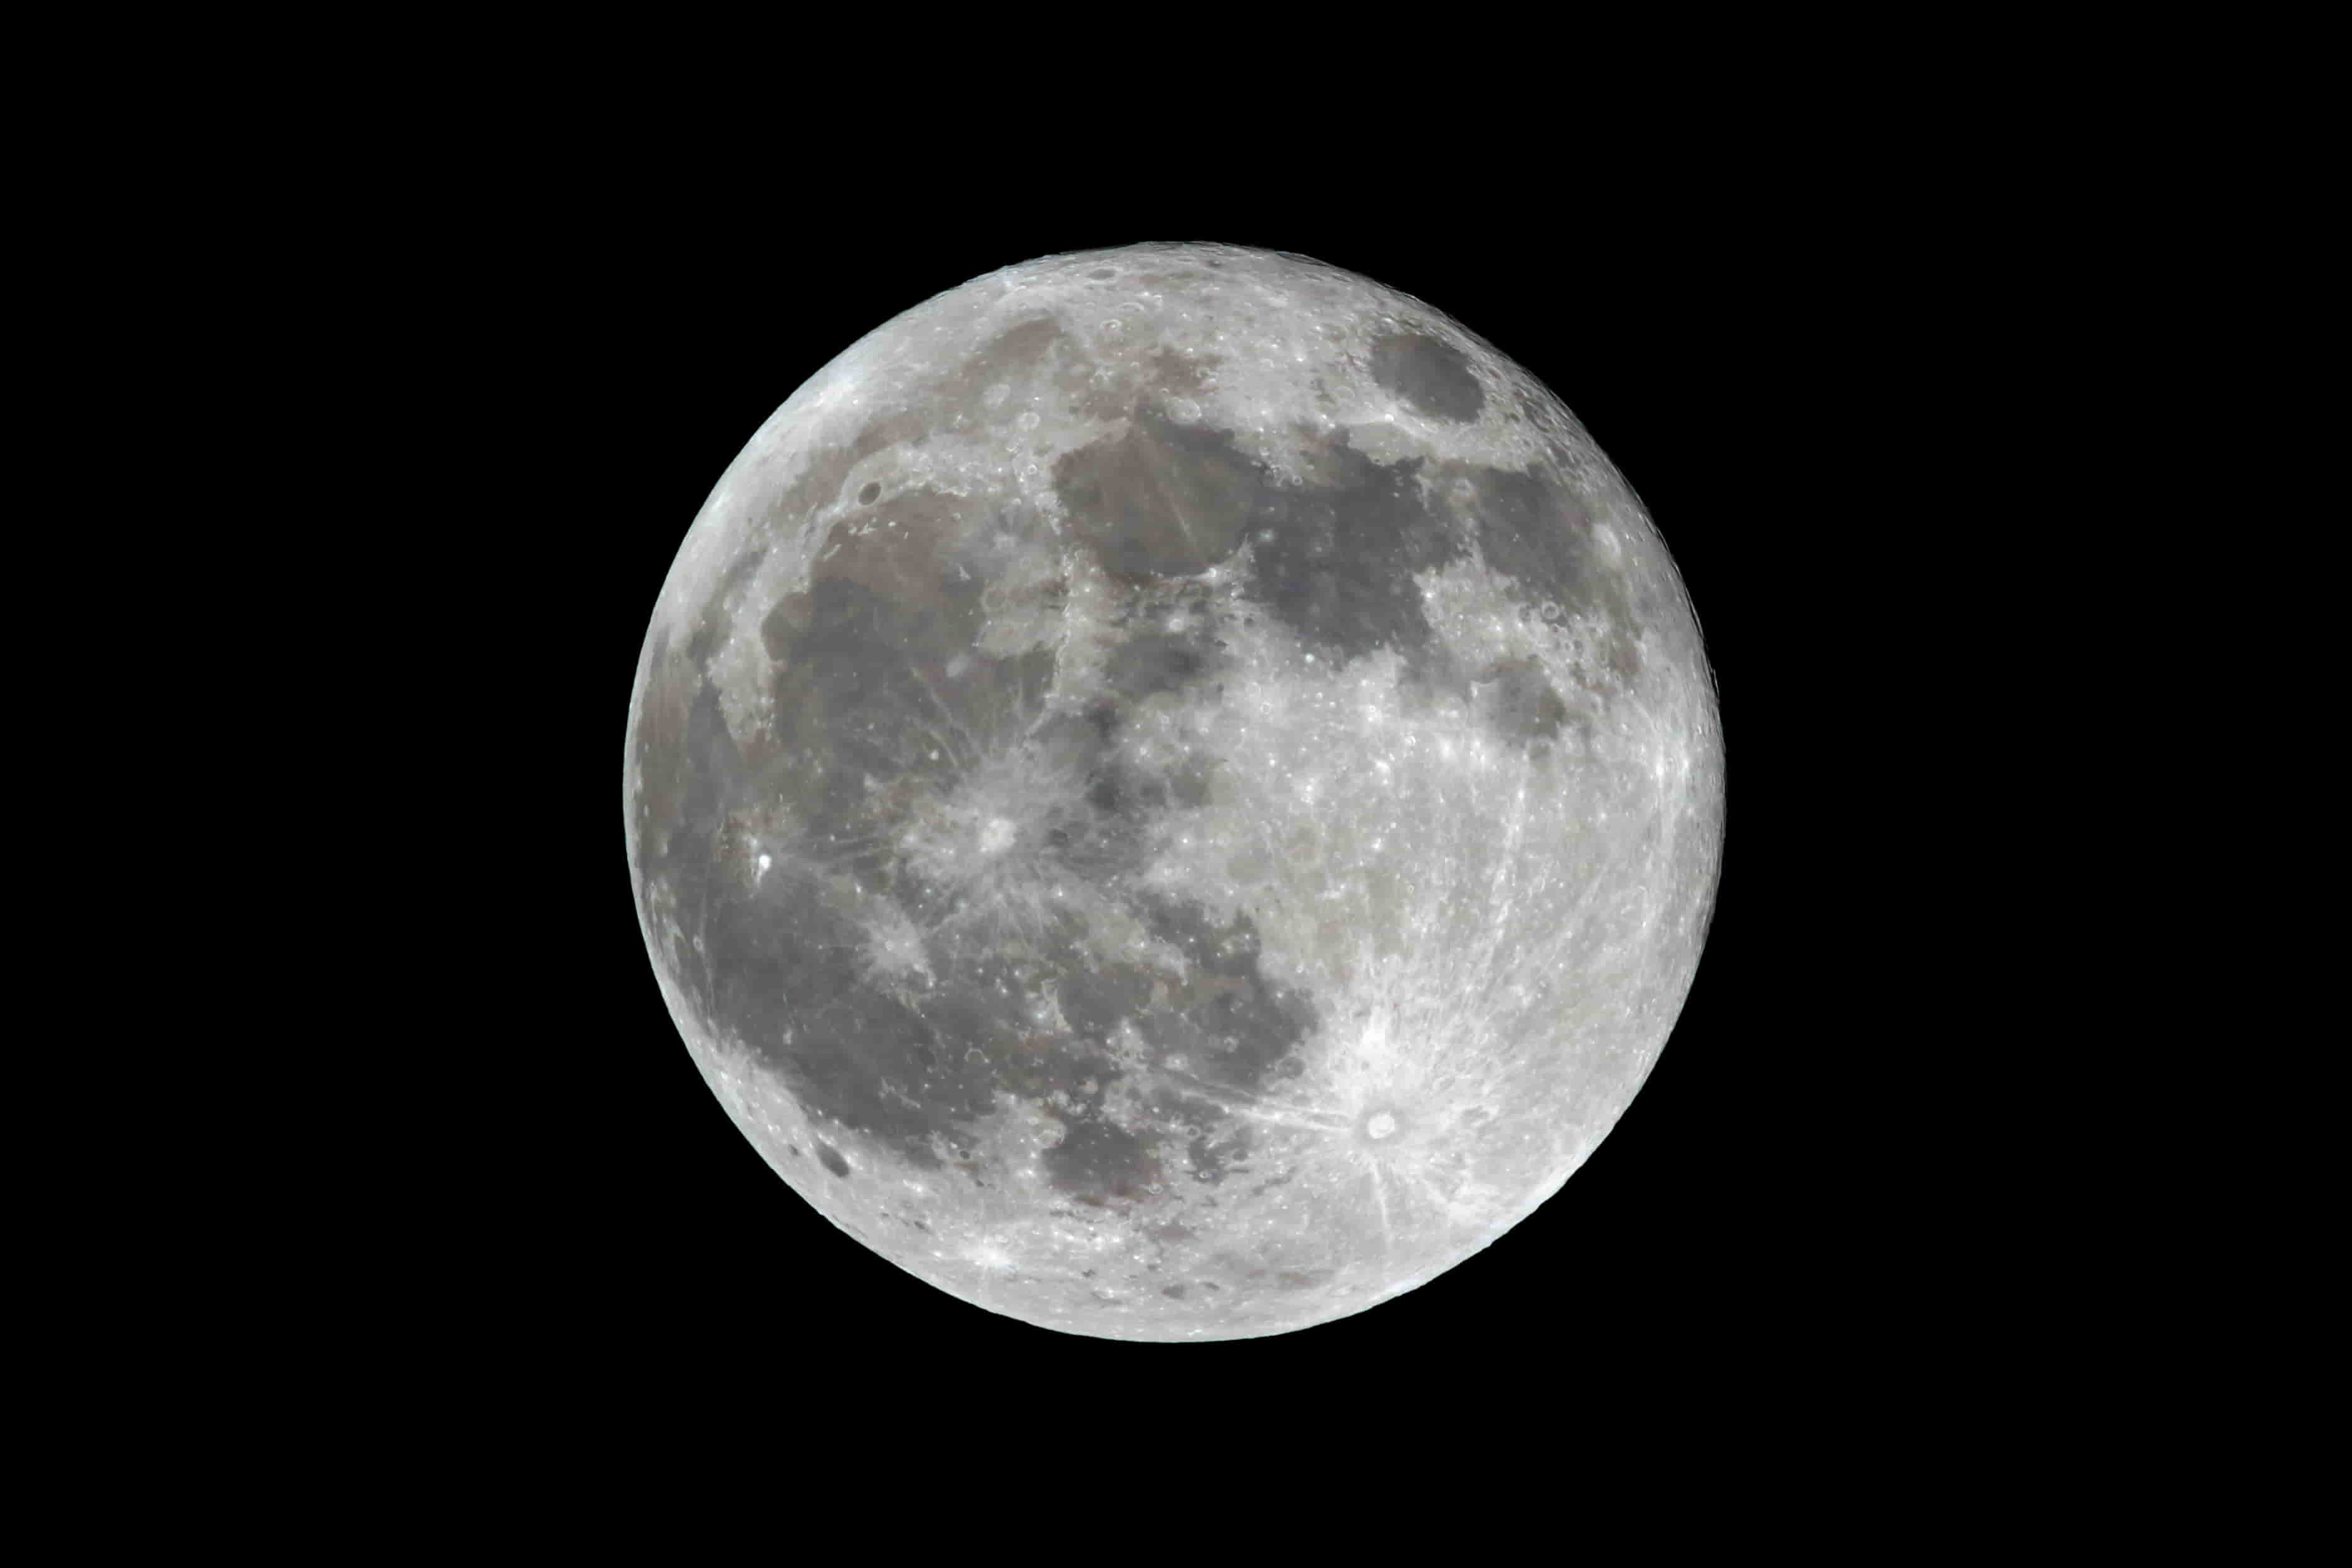 How To Photograph The Moon: A Beginner's Guide